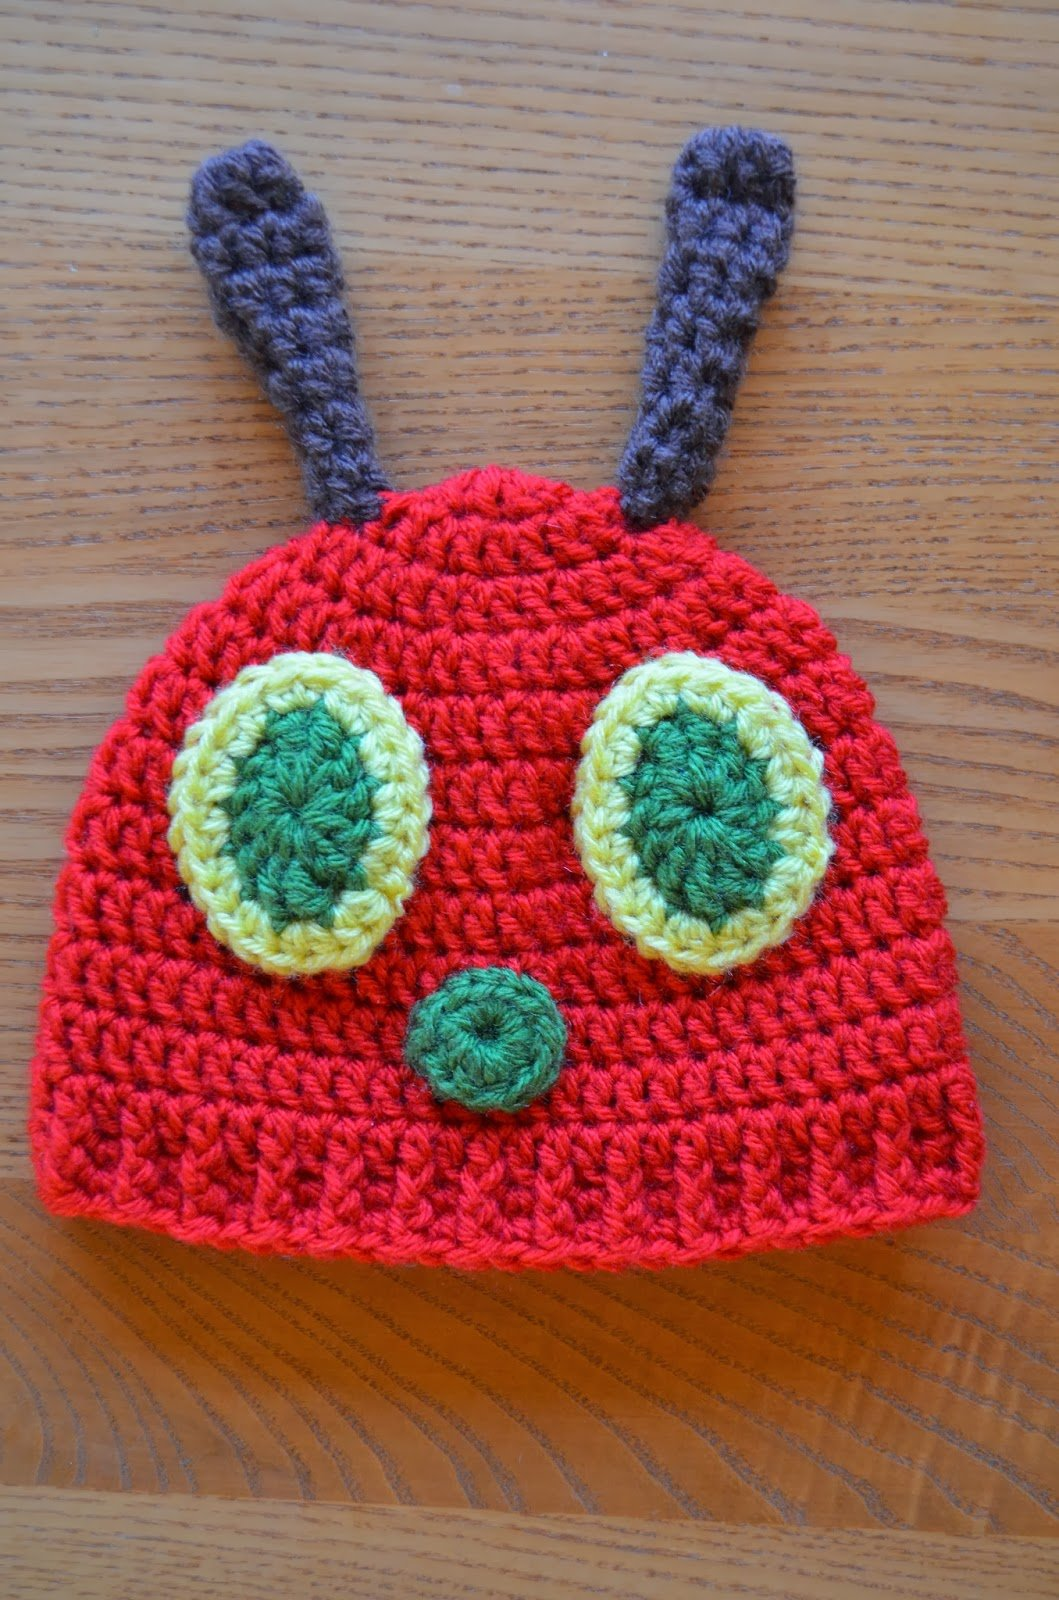 Very Hungry Caterpillar Crochet Hat Pattern Free : Crochet Hungry Caterpillar Cocoon and Hat Set with Free ...